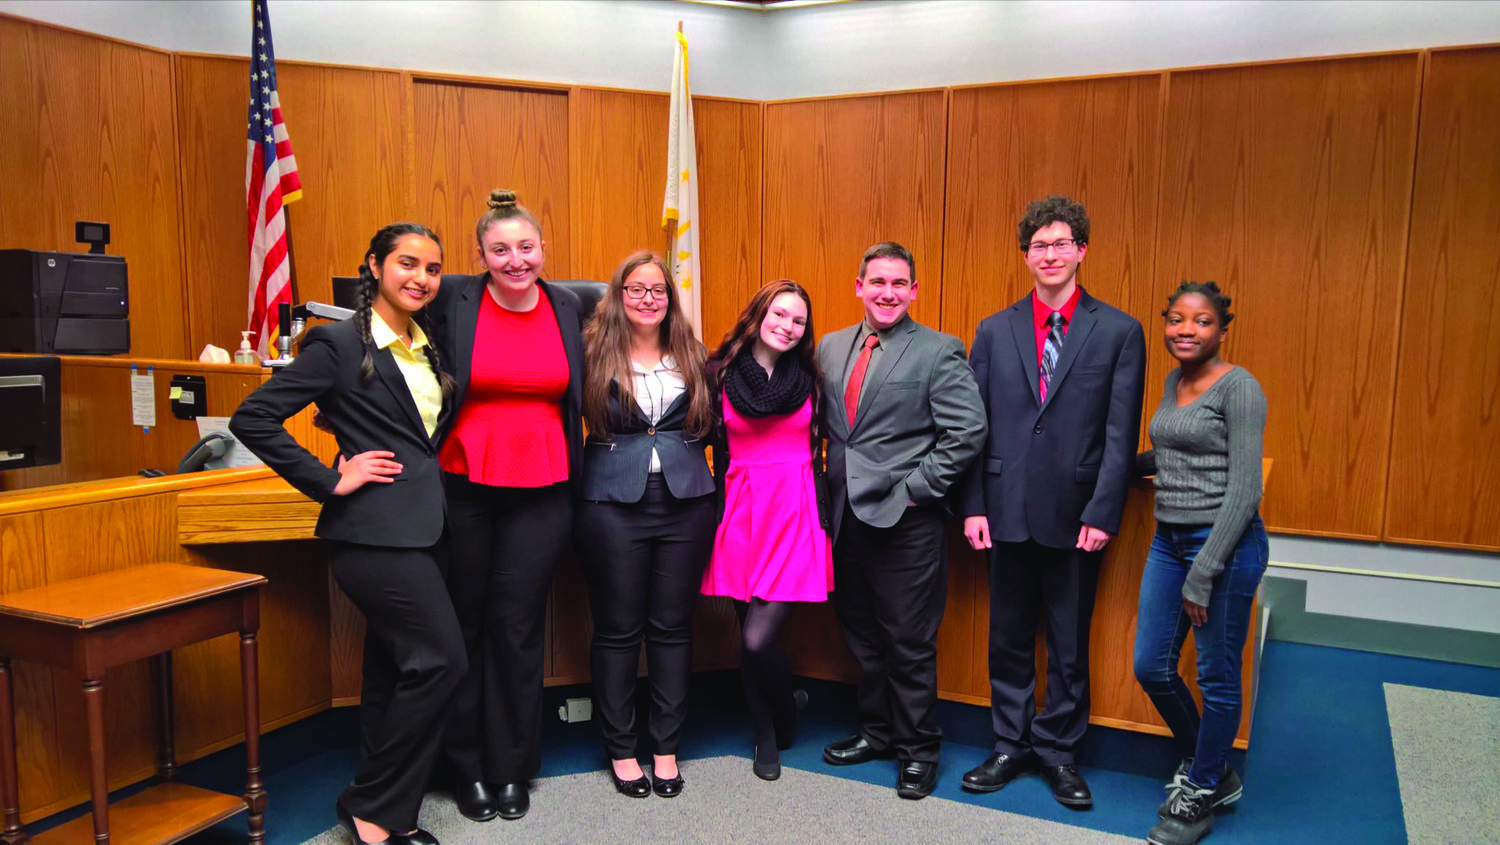 A SUCCESSFUL SEASON: The members of the Cranston West Mock Trial team pose together after another win. This season was the team's most successful yet, and the group made it to the semifinal round last week.